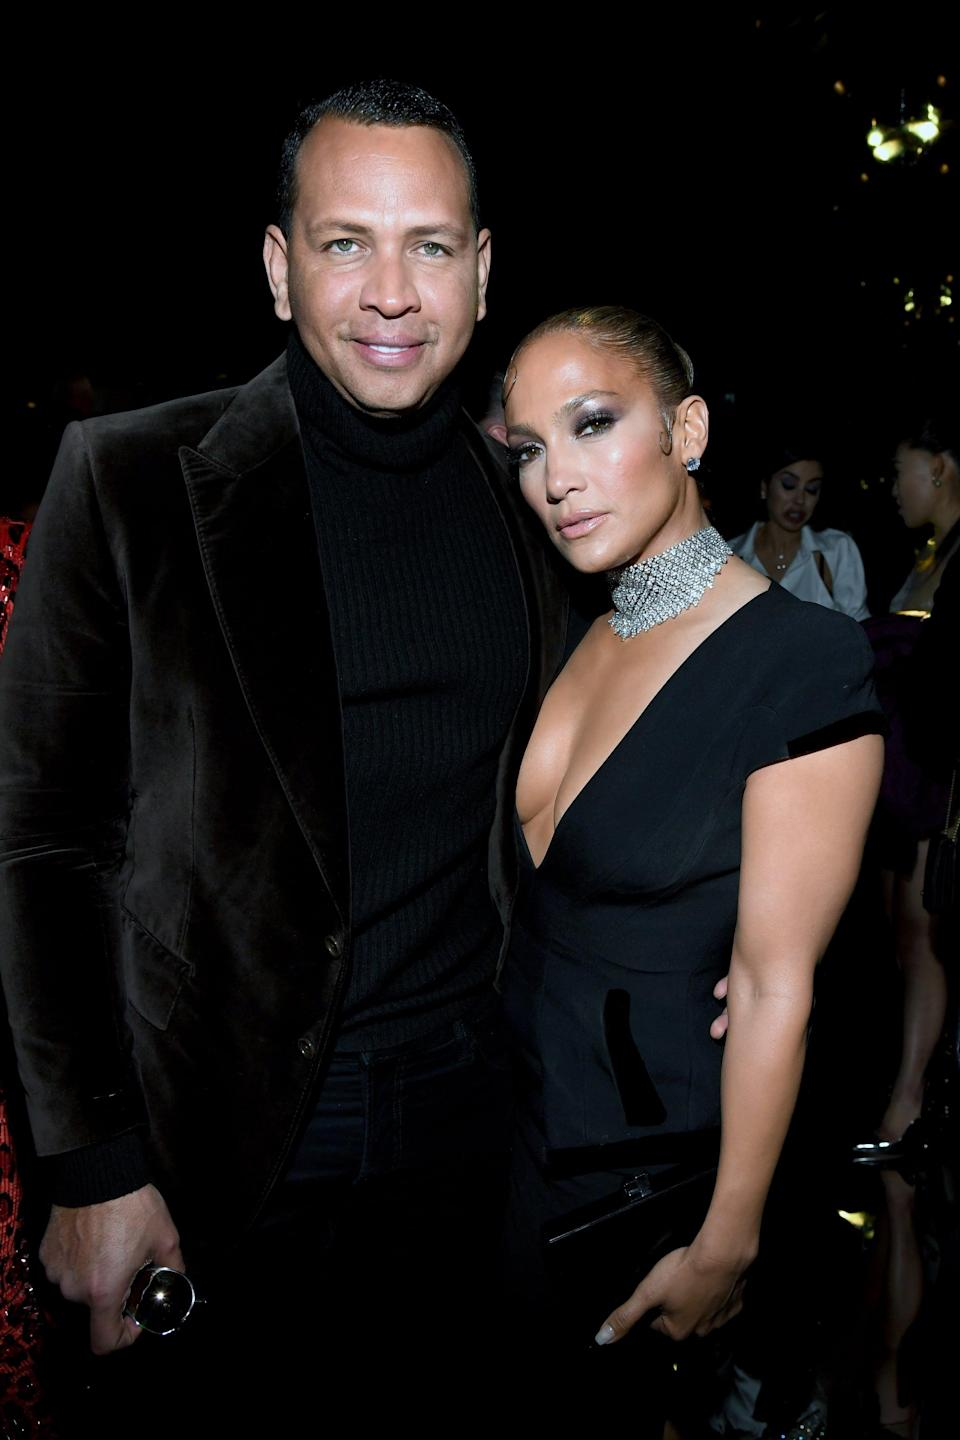 """<p><a href=""""https://www.popsugar.com/celebrity/jennifer-lopez-alex-rodriguez-break-up-48214923"""" class=""""link rapid-noclick-resp"""" rel=""""nofollow noopener"""" target=""""_blank"""" data-ylk=""""slk:The pair went their separate ways"""">The pair went their separate ways</a> after four years together in April. """"We have realized we are better as friends and look forward to remaining so,"""" they said in a joint statement to <strong>Today</strong>. """"We will continue to work together and support each other on our shared businesses and projects. We wish the best for each other and one another's children. Out of respect for them, the only other comment we have to say is thank you to everyone who has sent kind words and support."""" <a href=""""http://www.popsugar.com/celebrity/jennifer-lopez-ben-affleck-pictures-48406785"""" class=""""link rapid-noclick-resp"""" rel=""""nofollow noopener"""" target=""""_blank"""" data-ylk=""""slk:Jennifer has since rekindled her romance with Ben Affleck"""">Jennifer has since rekindled her romance with Ben Affleck</a></p> <p>.</p>"""